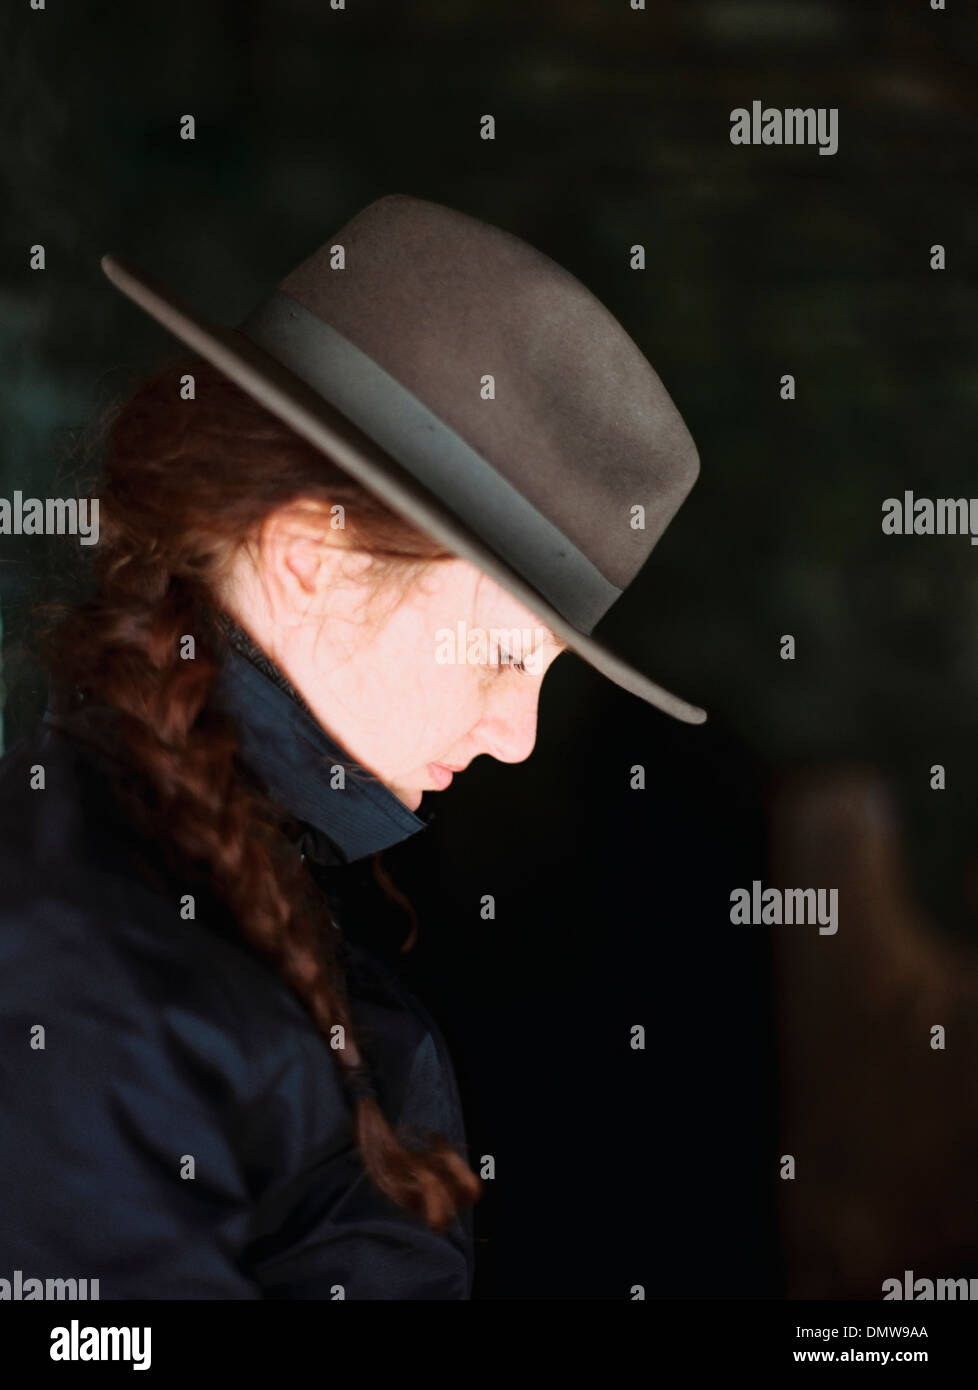 Profile of a woman wearing a felt hat with a brim. - Stock Image